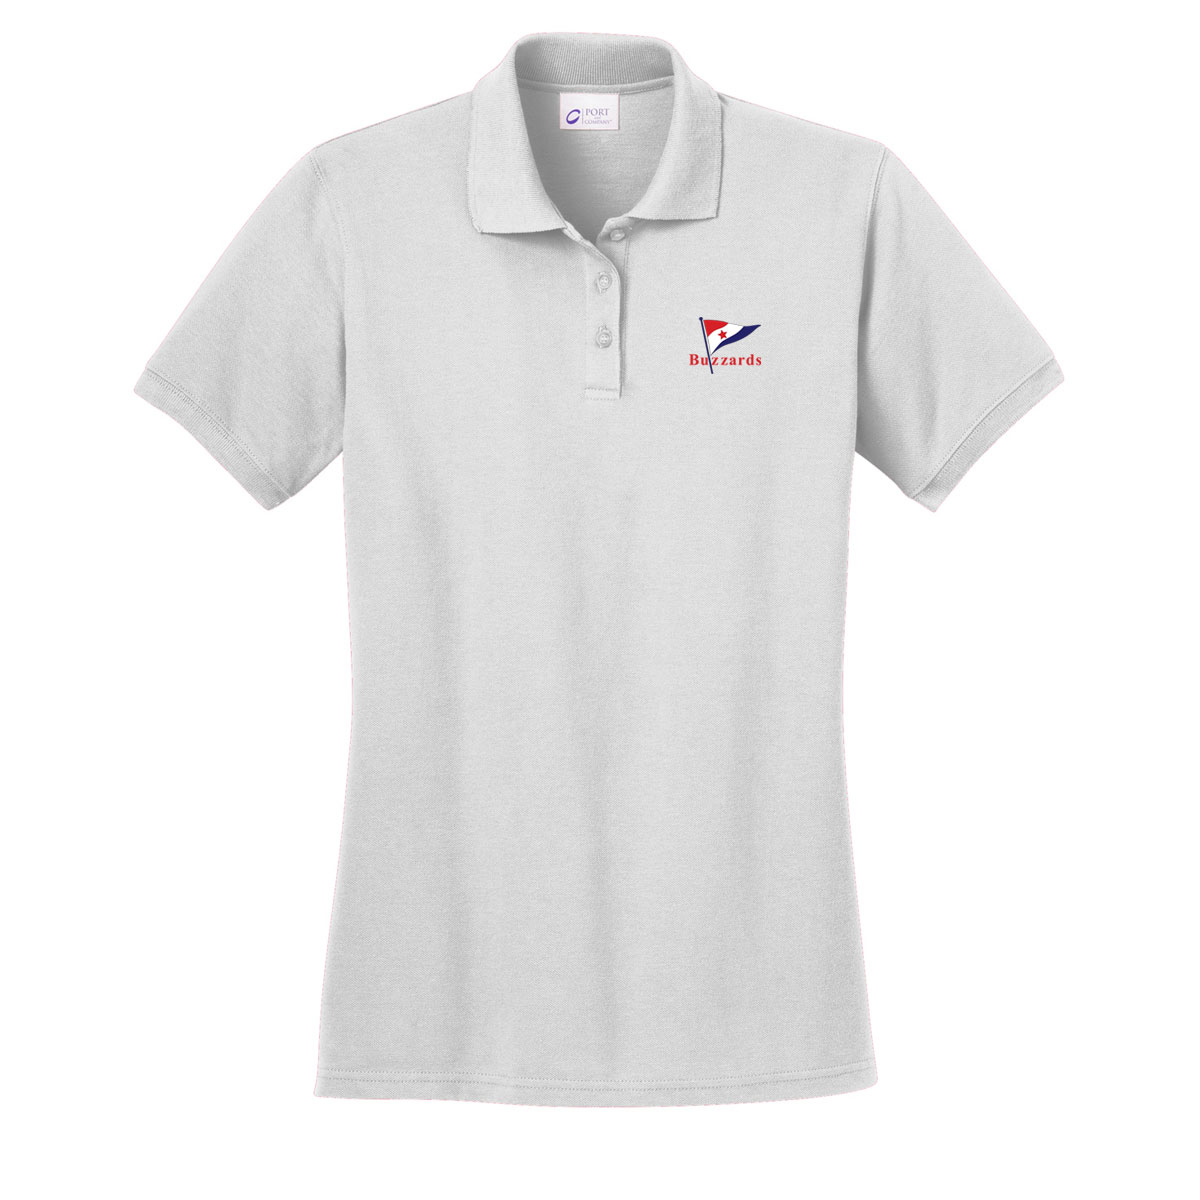 Buzzards Yacht Club - Women's Cotton Polo (BUZ102)